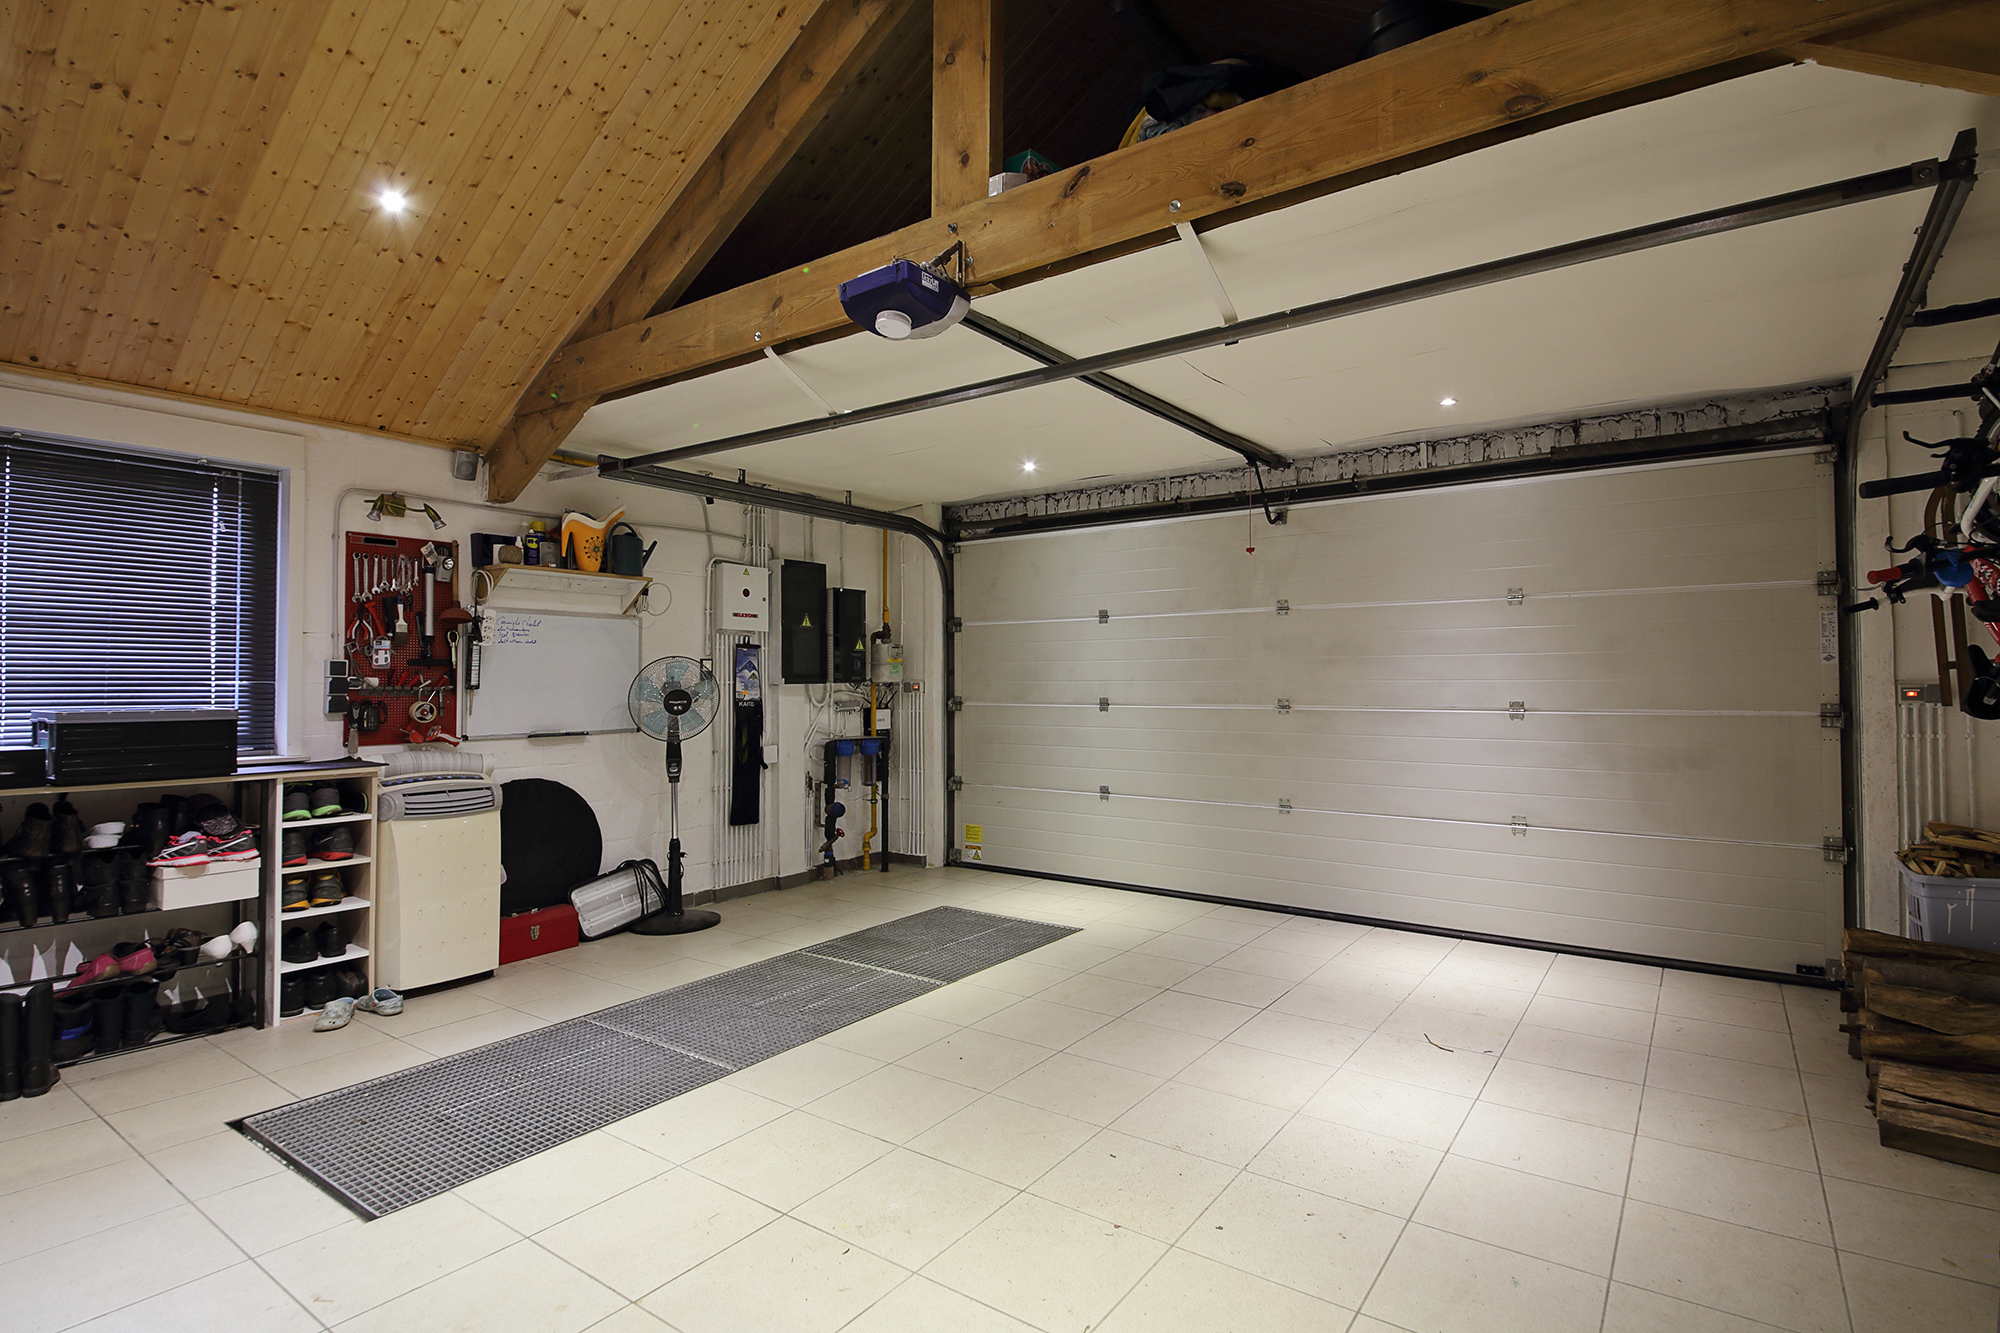 Is Your Garage Making Noises? Is It Louder Than It Used To Be? Can Your  Neighbors Hear You Coming Home And Opening The Garage Door To Get Inside?